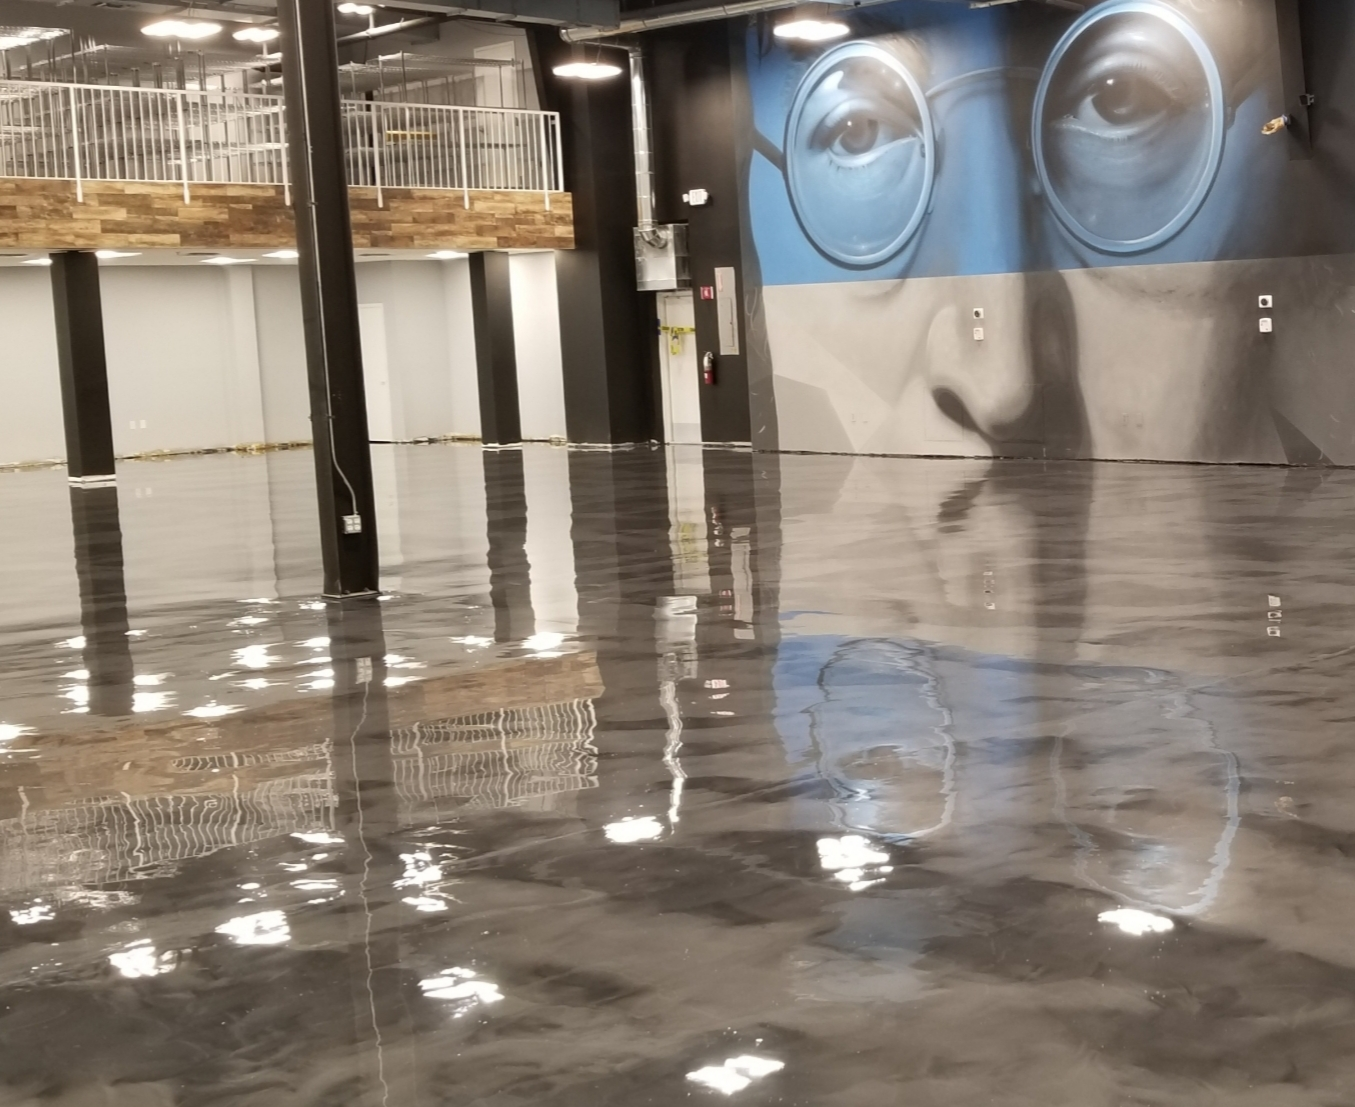 STARTING FROM $6 sq ft - CALL US NOW FOR A FREE ESTIMATE - We provide premium bespoke Epoxy flooring installations for Residential & Commercial properties as well as Warehouses & Industrial. Satin Finish Concrete specialise in Metallic Epoxy, Standard Epoxy, Chip/Flake Epoxy & Exterior Epoxy. We are here to serve all of South Florida. Miami, Ft Lauderdale, Boca Raton, Deerfield Beach, West Palm Beach & More.